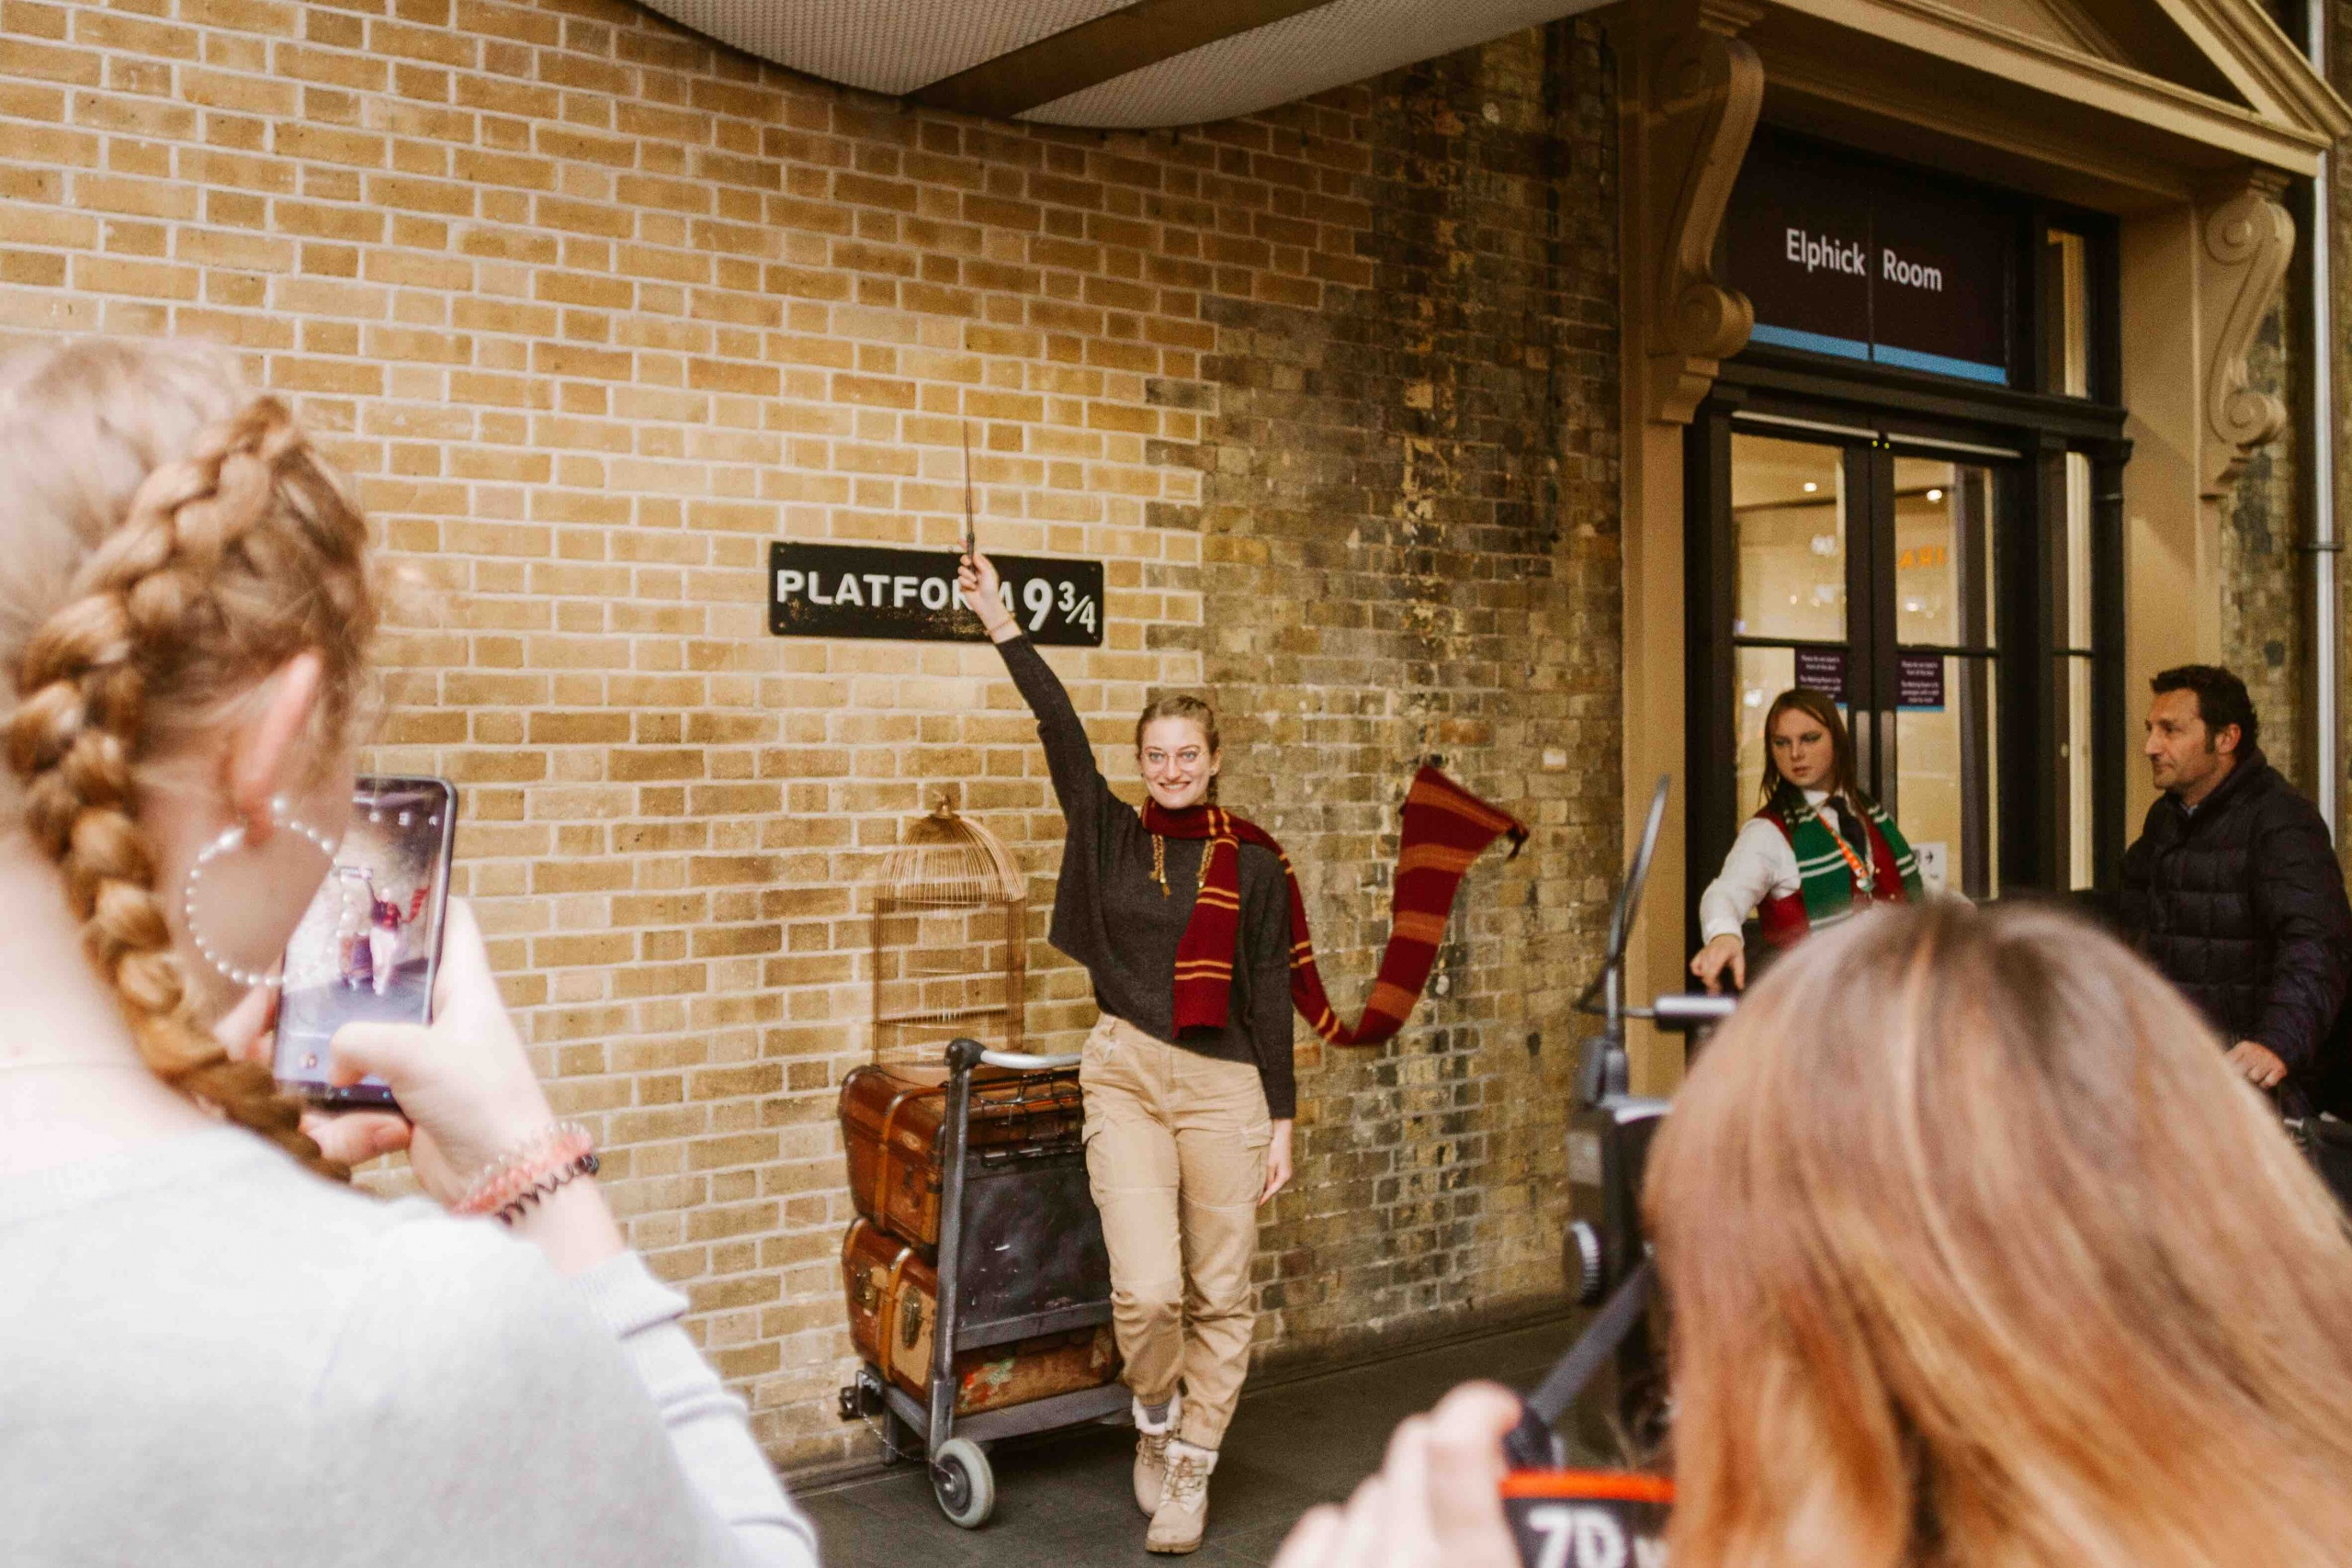 binario di Harry Potter stazione St. Pancras